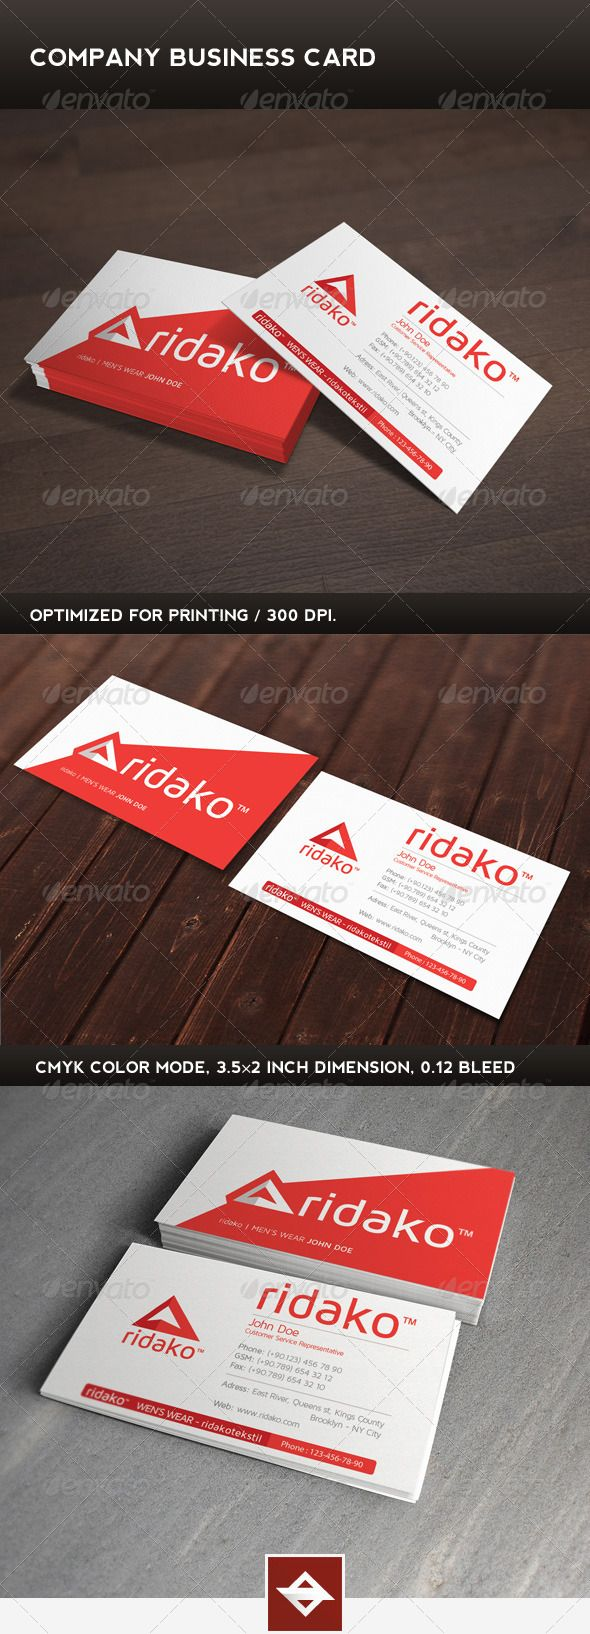 95 best print templates images on pinterest print templates company business card graphicriver company business card square corner possible reheart Choice Image